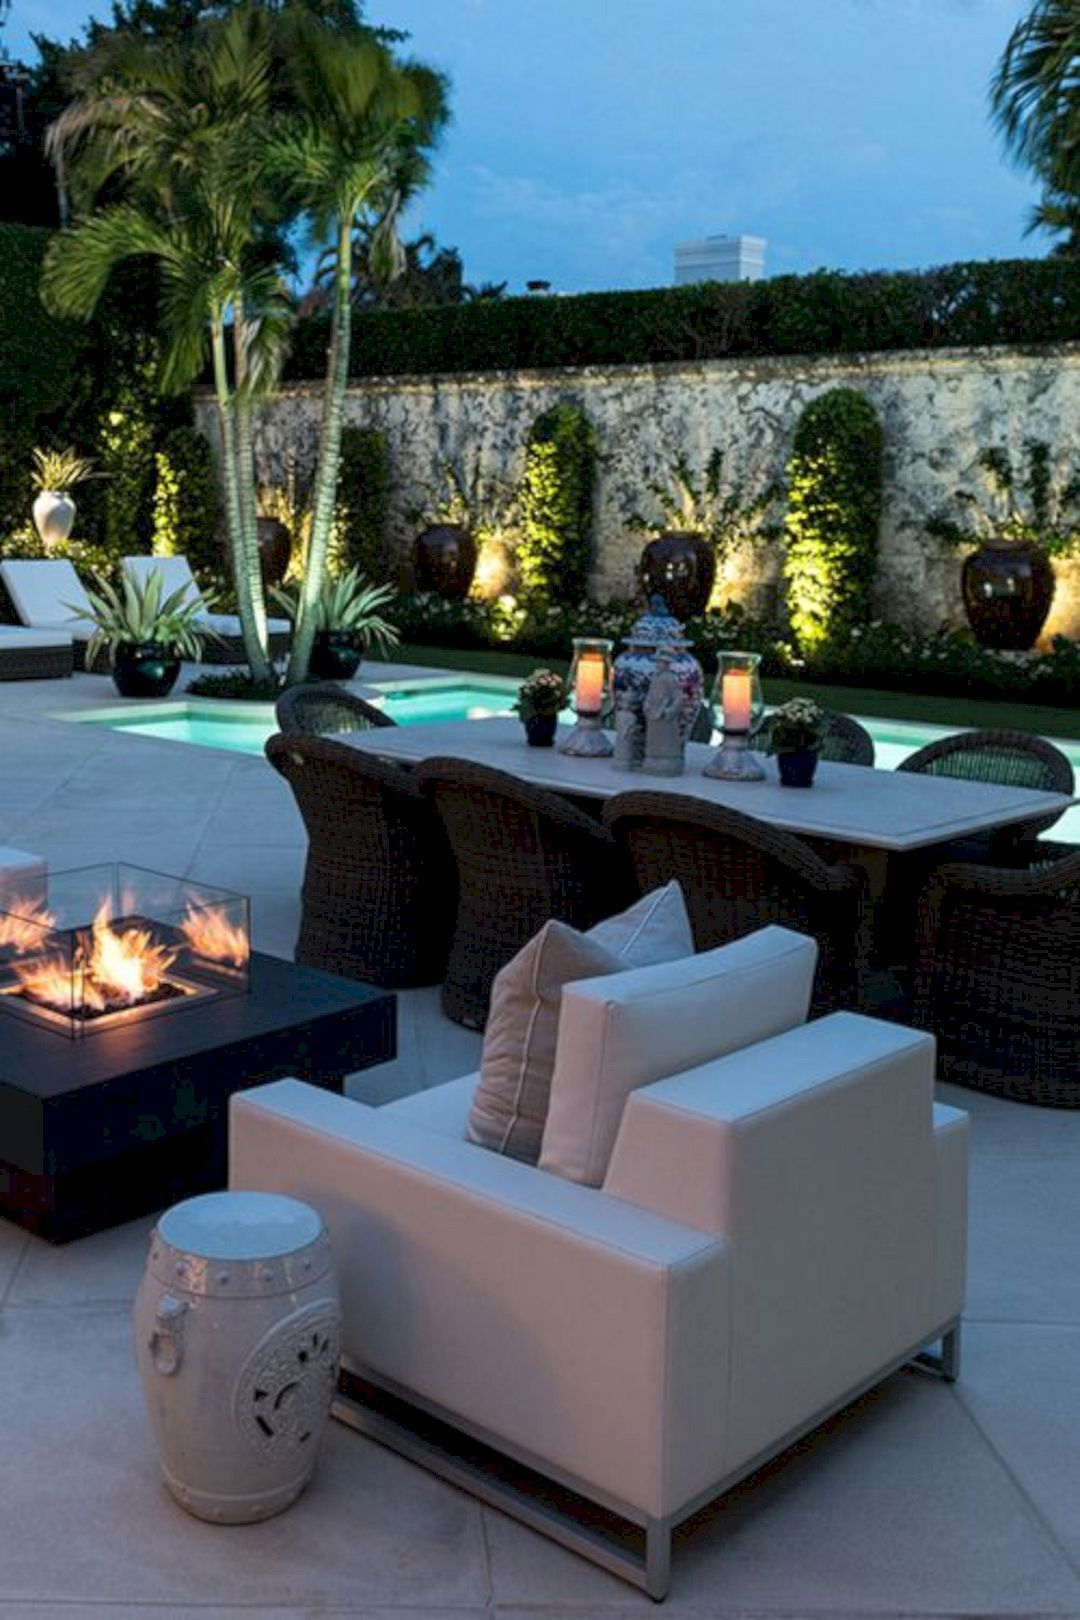 16 Awesome Pool Furniture Ideas | Furniture ideas, Shabby and Towel on awesome backyards with pools lazy rivers, awesome home indoor designs, awesome above ground pool designs, awesome home bar designs,